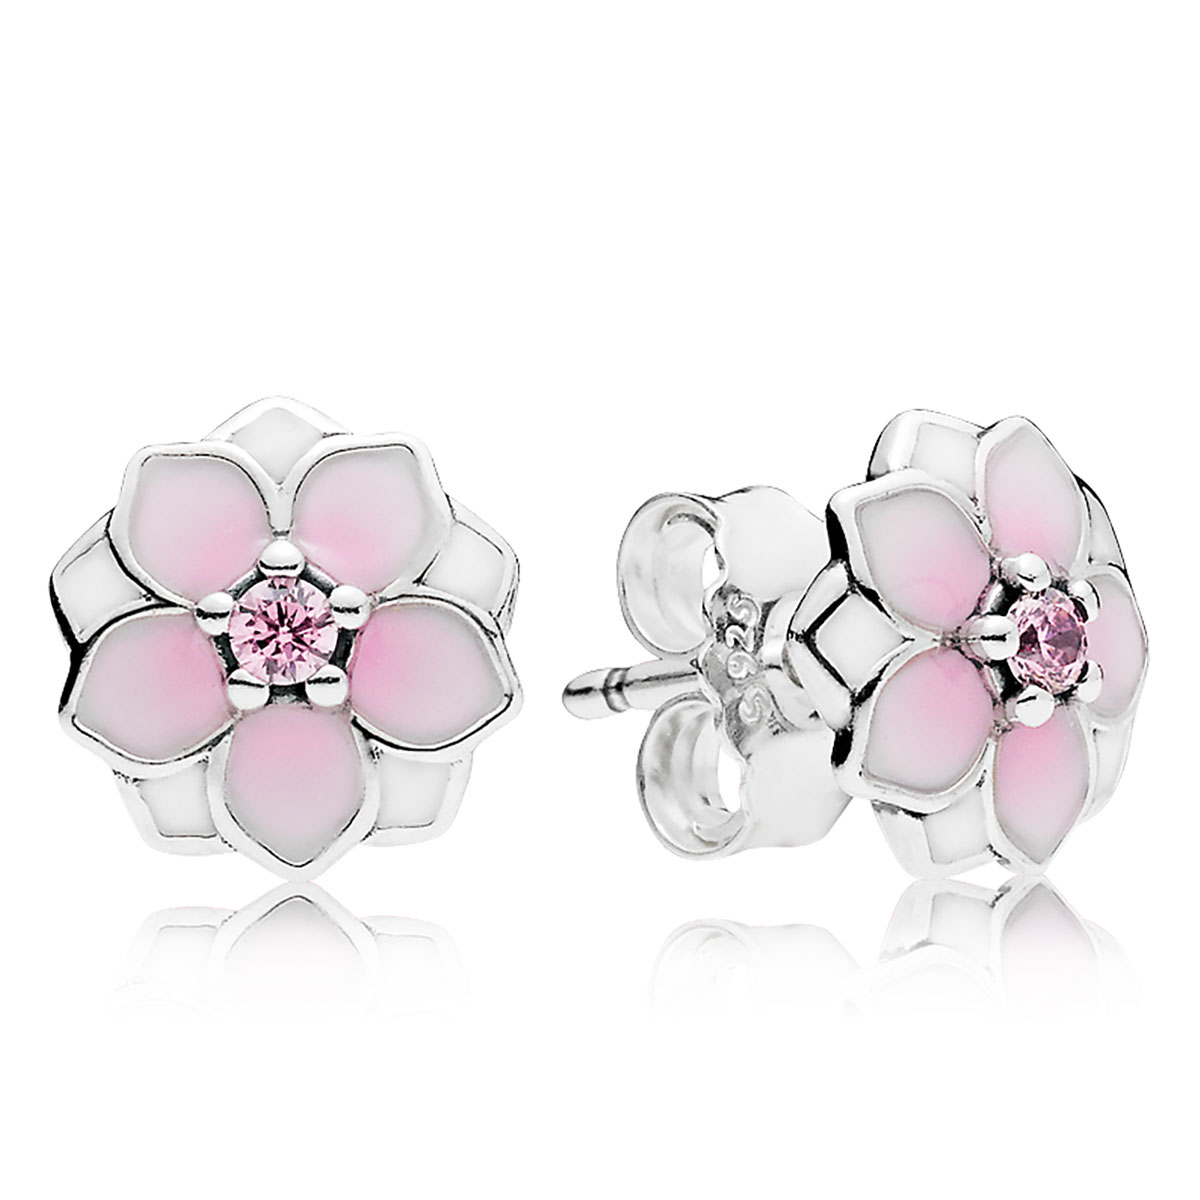 Pandora spring charms pancharmbracelets pandora magnolia bloom pale cerise enamel amp pink cz earrings mightylinksfo